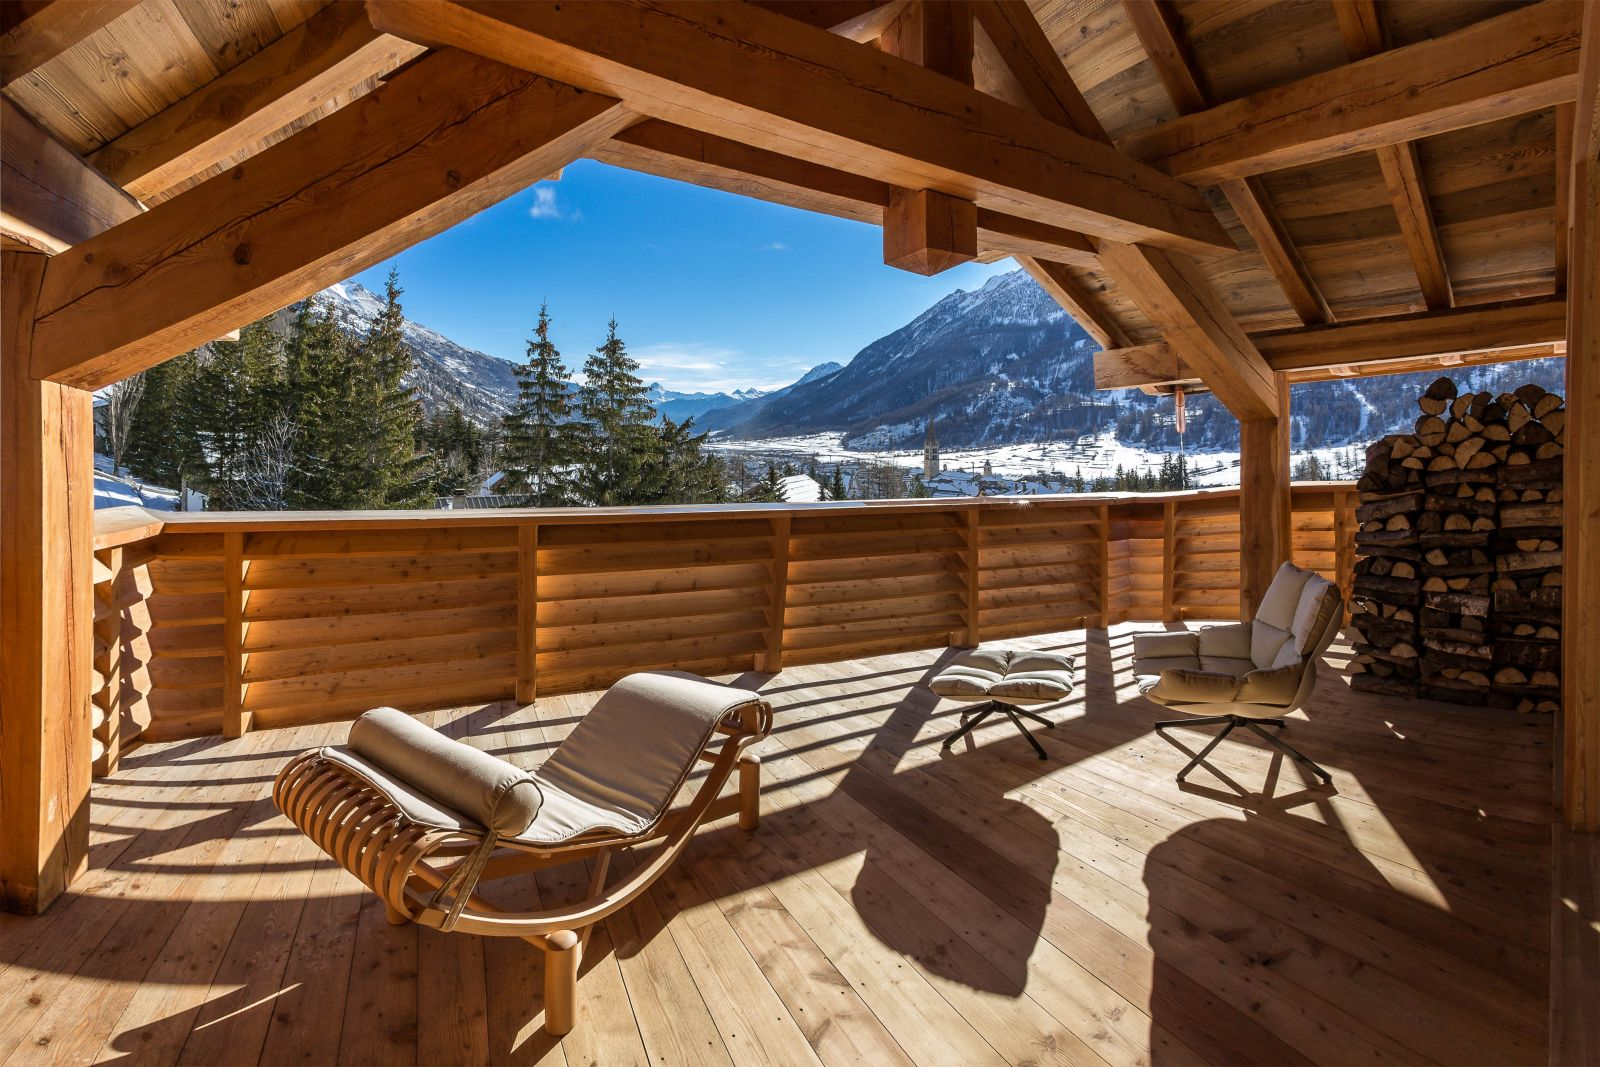 location chalet luxe serre chevalier pied des pistes piscine interieure. Black Bedroom Furniture Sets. Home Design Ideas